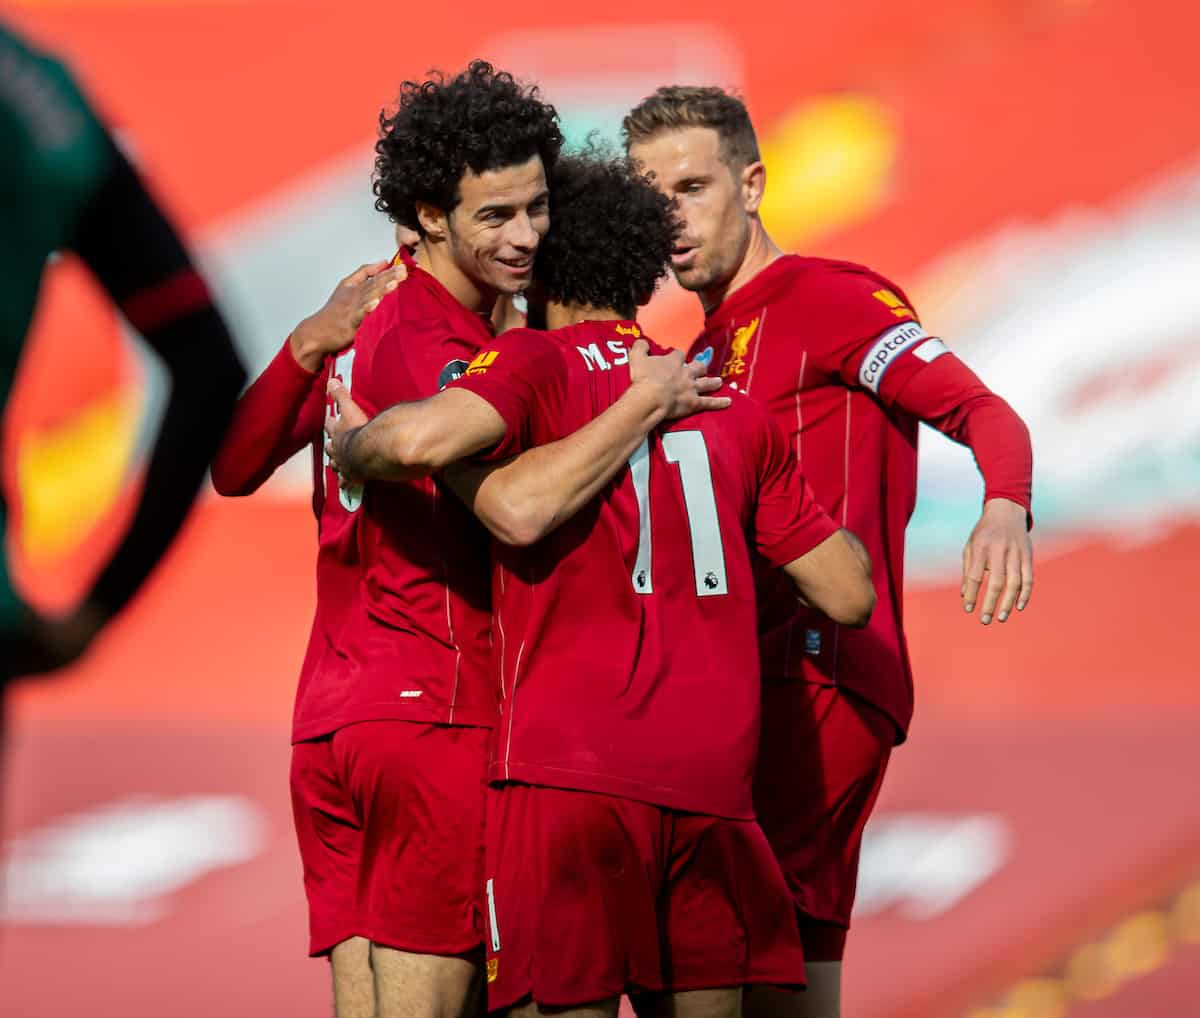 LIVERPOOL, ENGLAND - Sunday, July 5, 2020: Liverpool's Curtis Jones (L) celebrates scoring the second goal with team-mates during the FA Premier League match between Liverpool FC and Aston Villa FC at Anfield. The game was played behind closed doors due to the UK government's social distancing laws during the Coronavirus COVID-19 Pandemic. (Pic by David Rawcliffe/Propaganda)